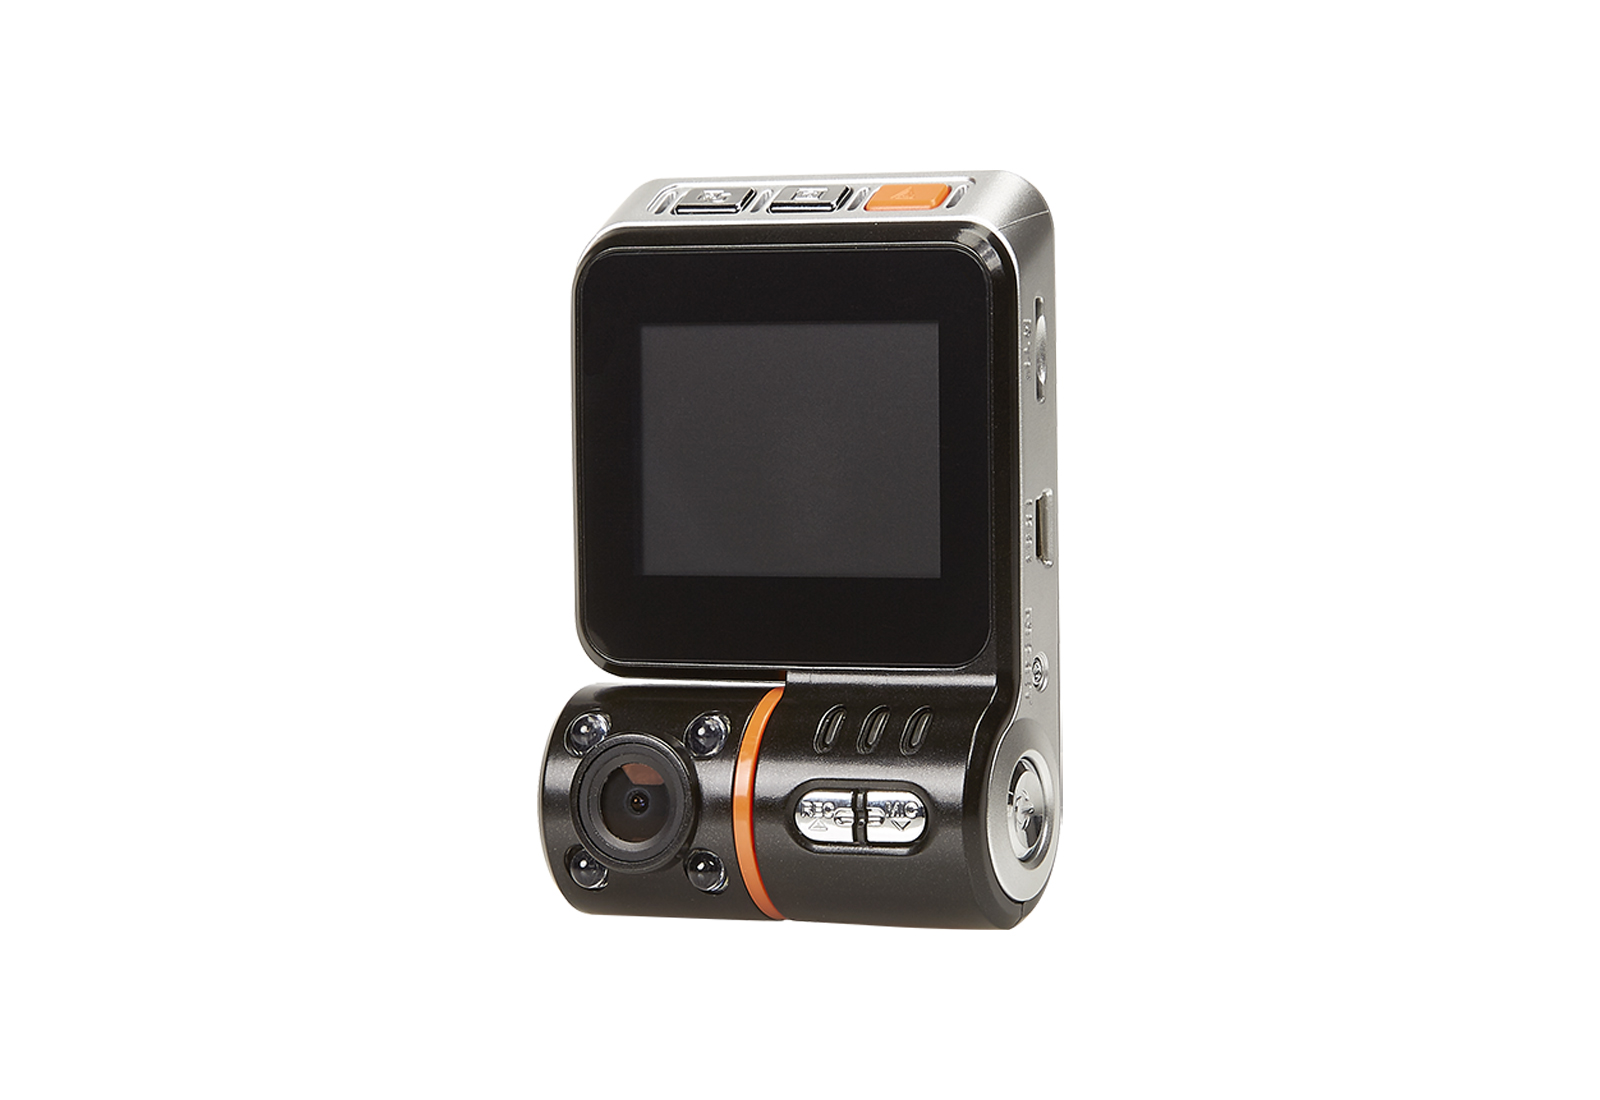 Clear Dash HD X3000 Product Image